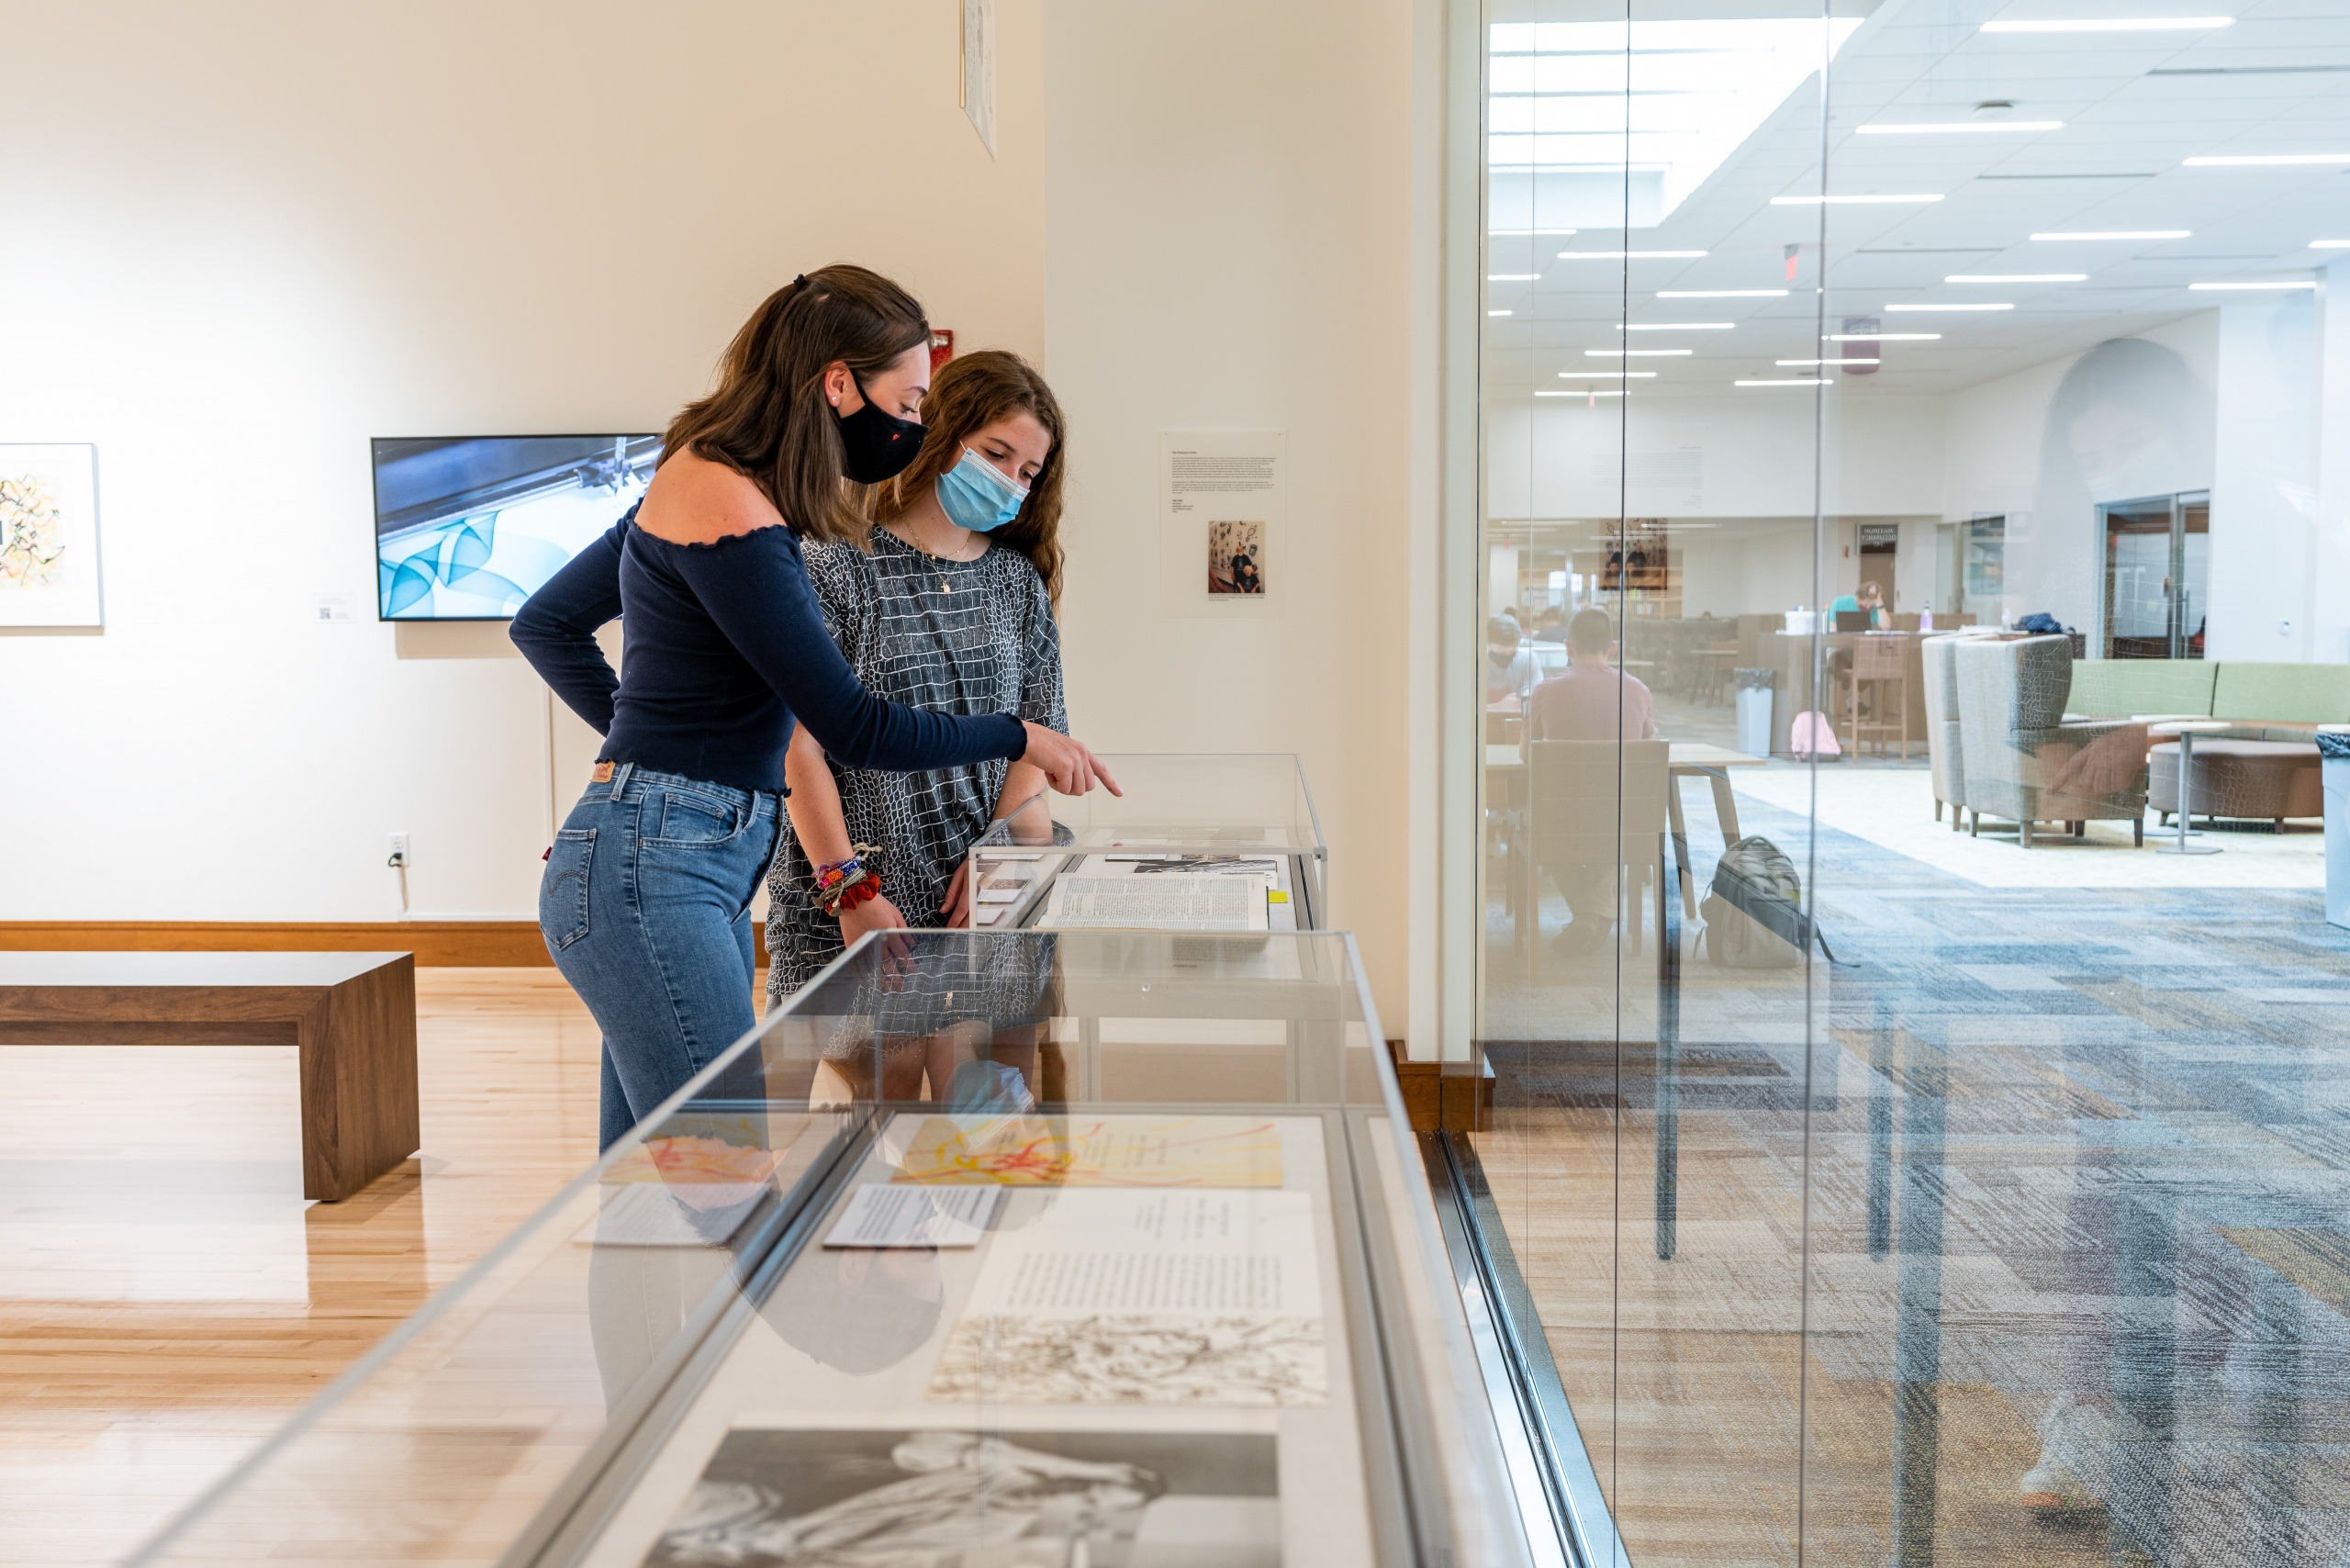 the people looking at a glass case in the Verostko gallery